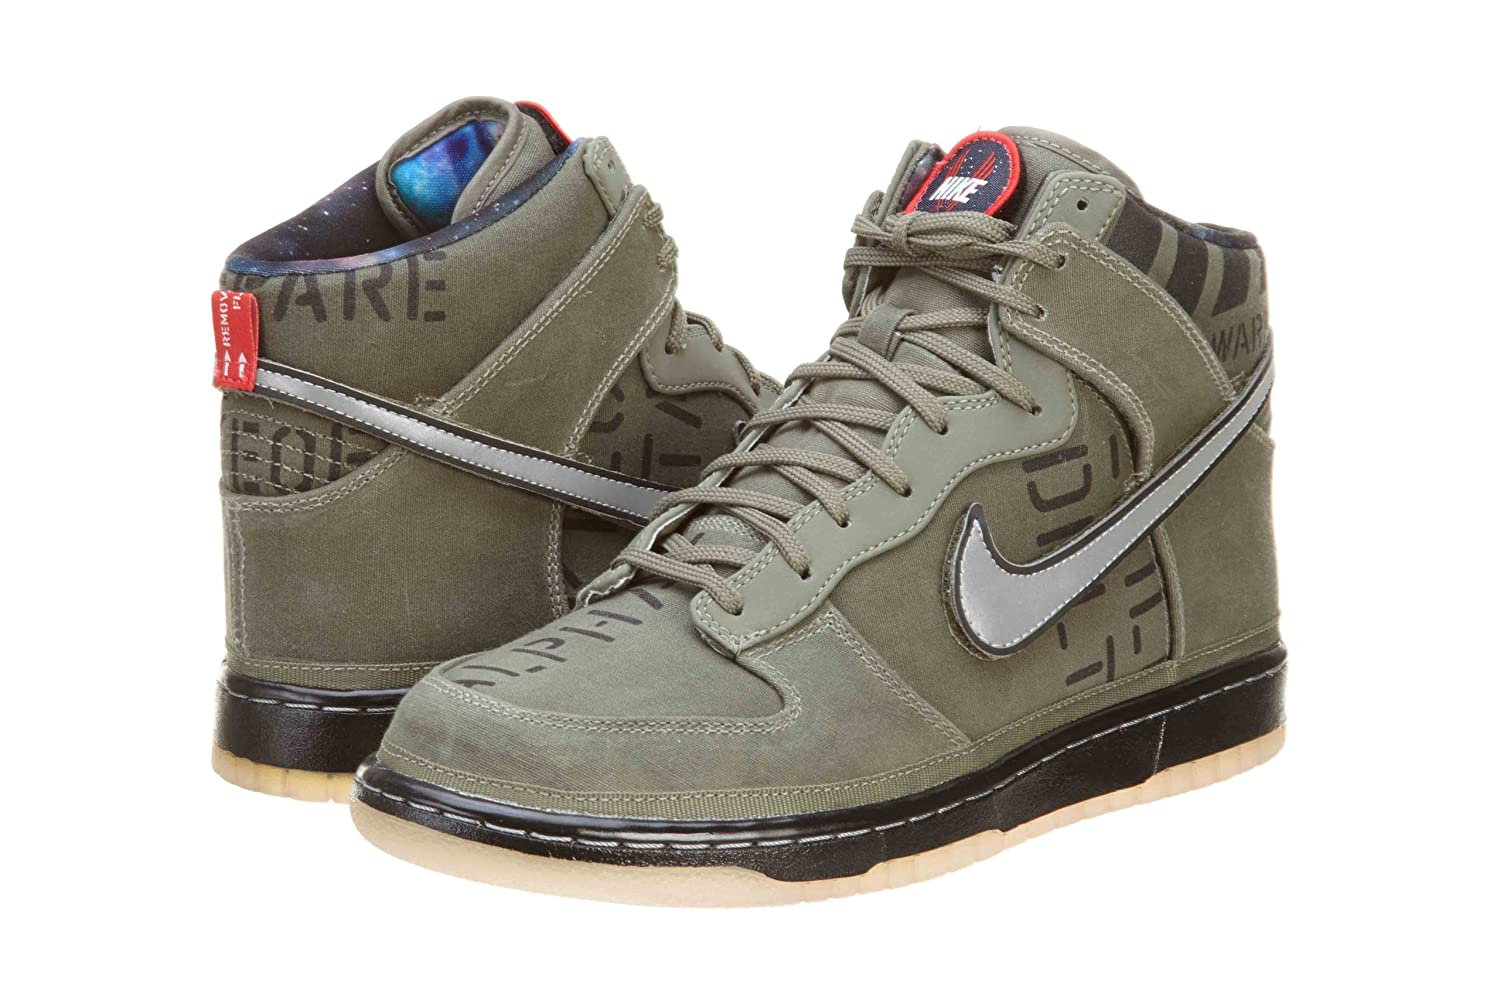 info for 09a43 45708 Amazon.com  Nike Dunk Hi Premium QS All Star Galaxy Pack Mens Basketball  Shoes Rogue GreenBlack 503766-300-14  Shoes